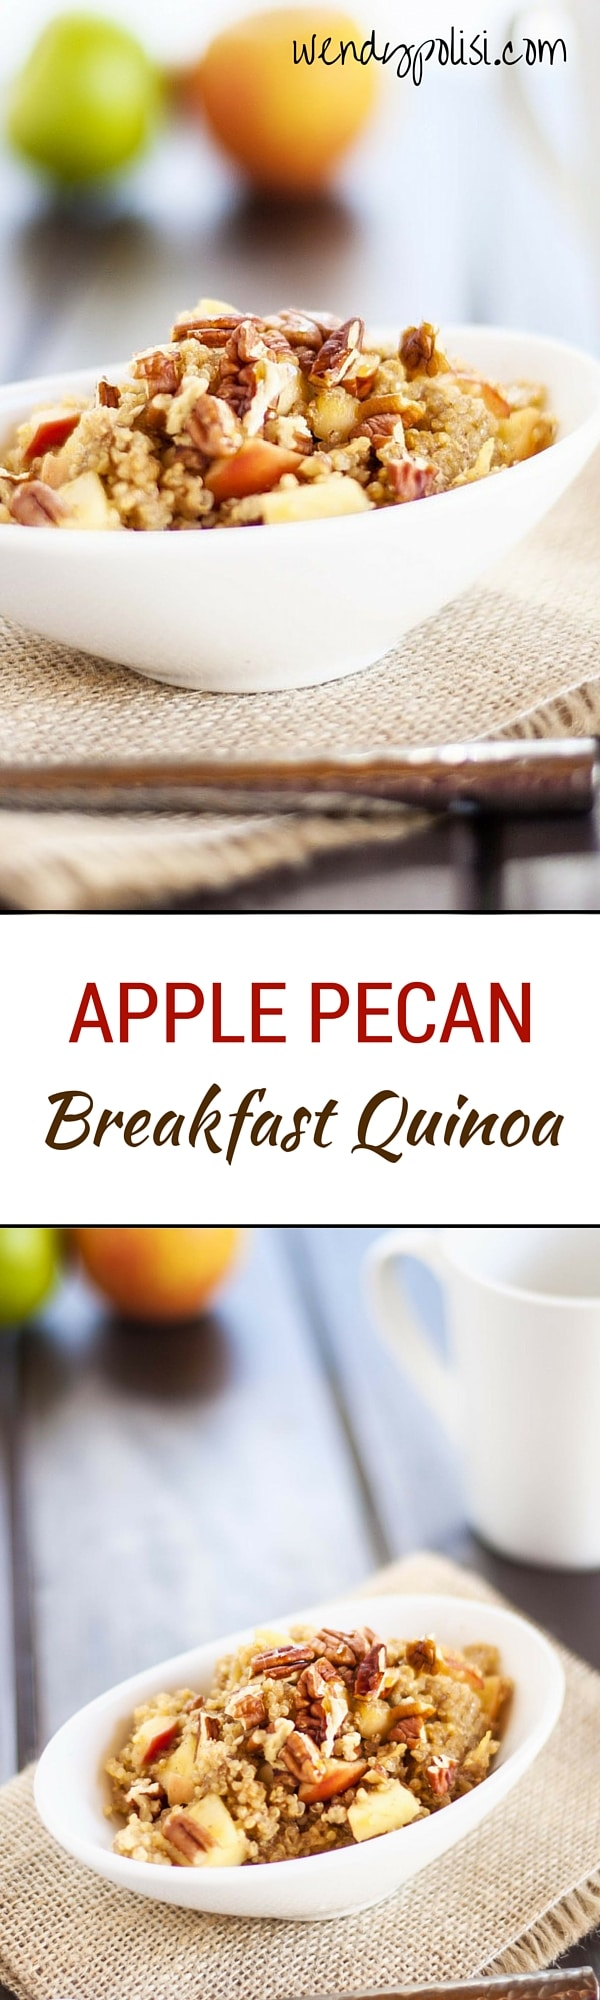 Apple Pecan Breakfast Quinoa - This healthy quinoa breakfast recipe is the perfect way to start the day. Easy & Delicious! - WendyPolisi.com